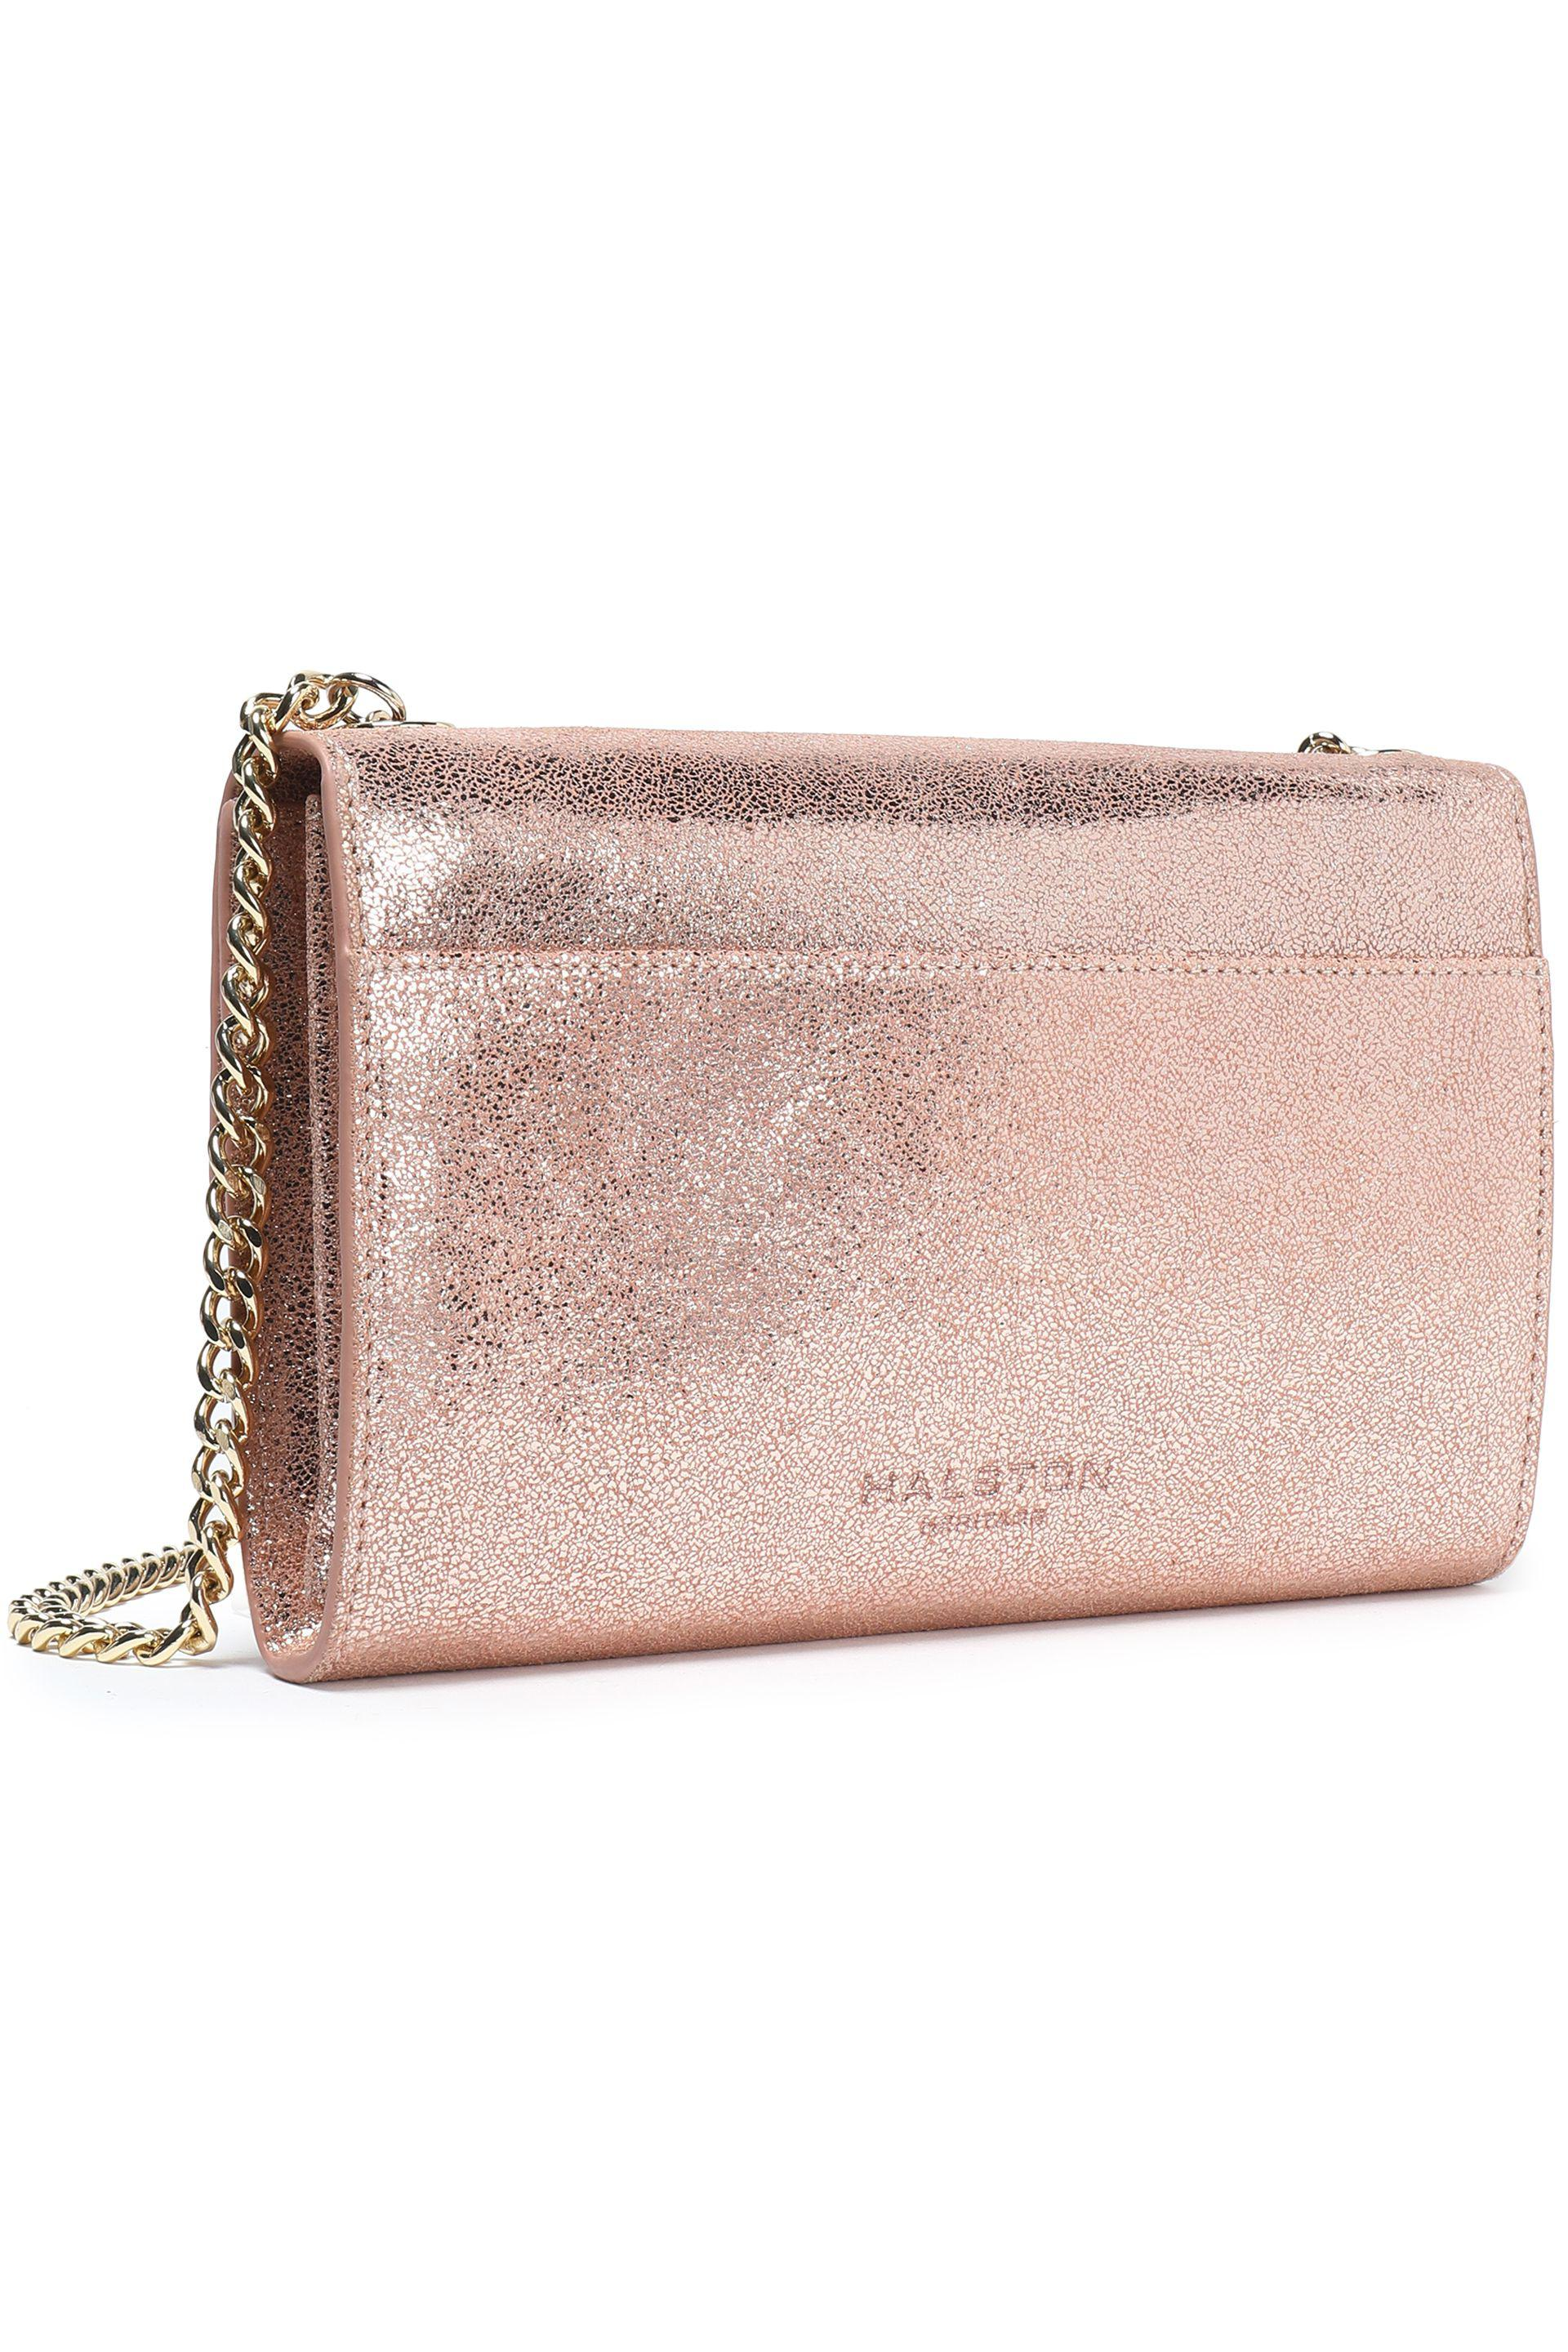 072551f31e6 Lyst - Halston Metallic Cracked-leather Shoulder Bag in Pink